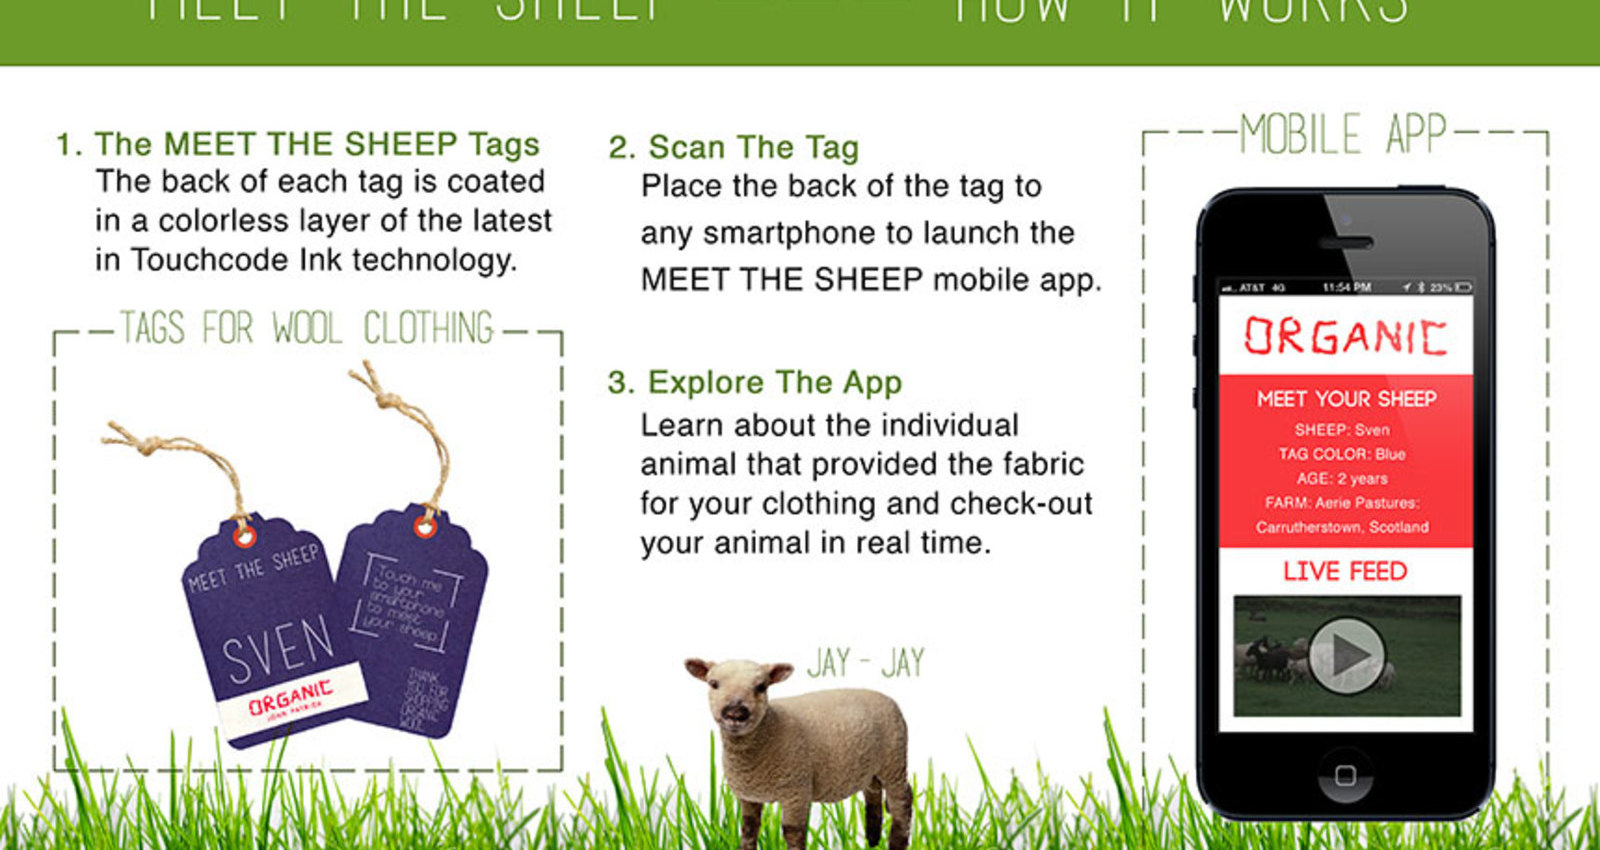 Meet The Sheep